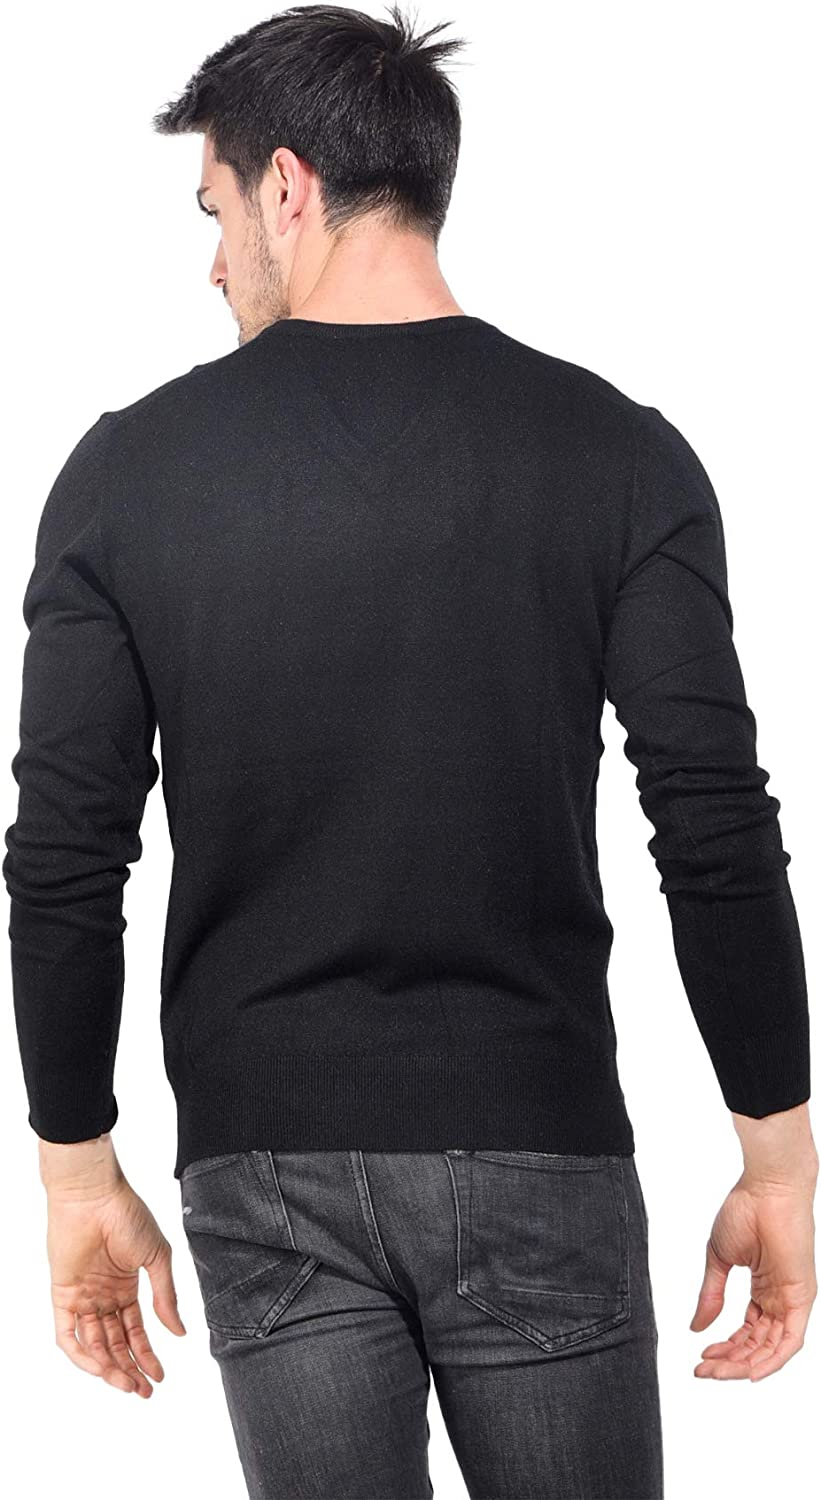 Elbow Patches Winter Collection Men Le Cachemire Fran/çais V-Neck Sweater